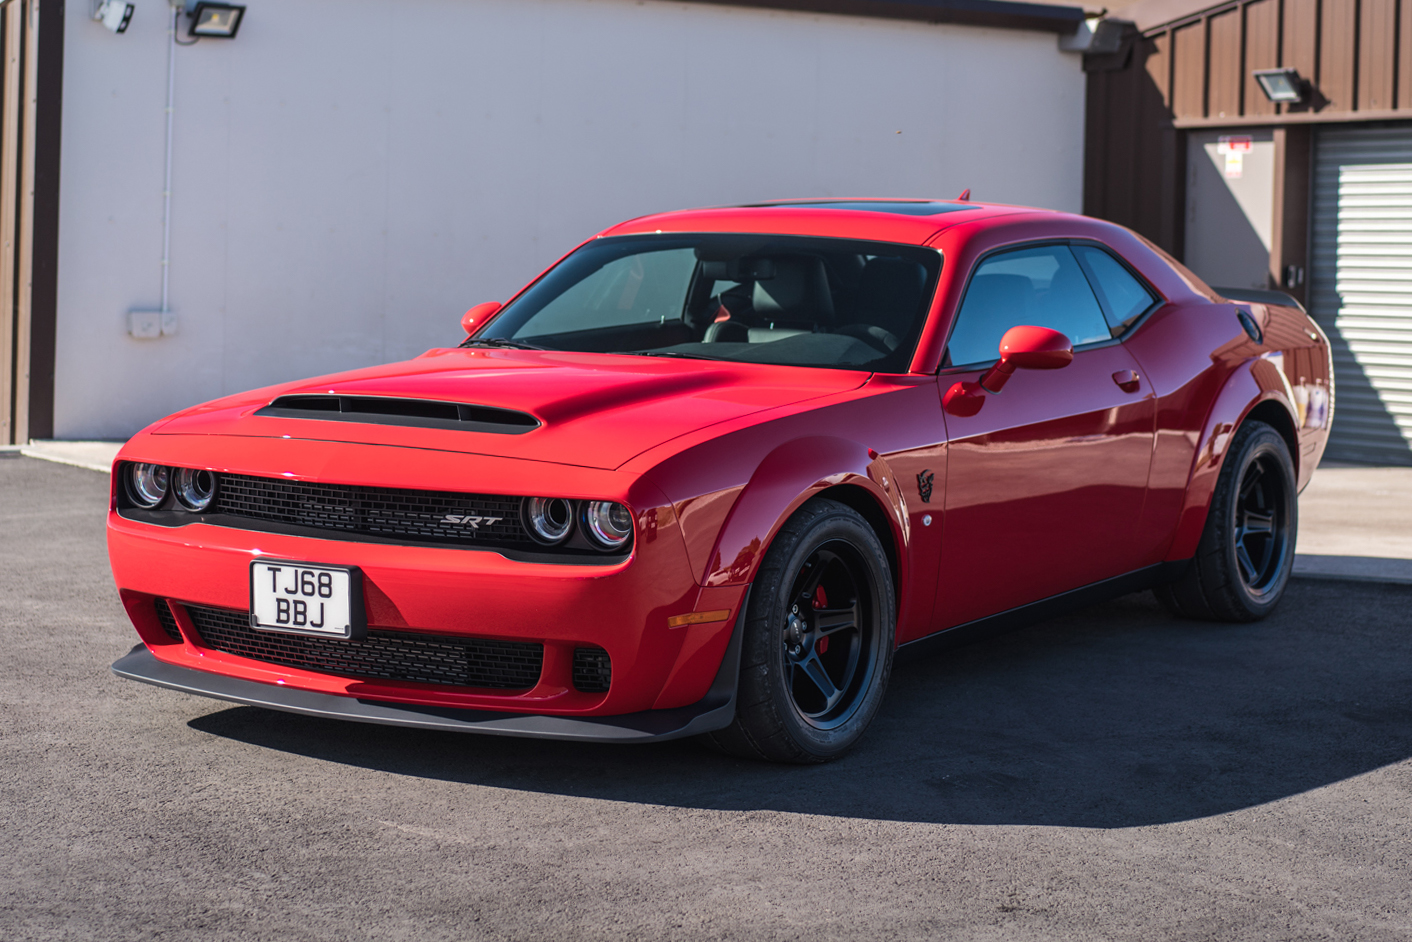 2018 Dodge Challenger Srt Demon 131 Miles